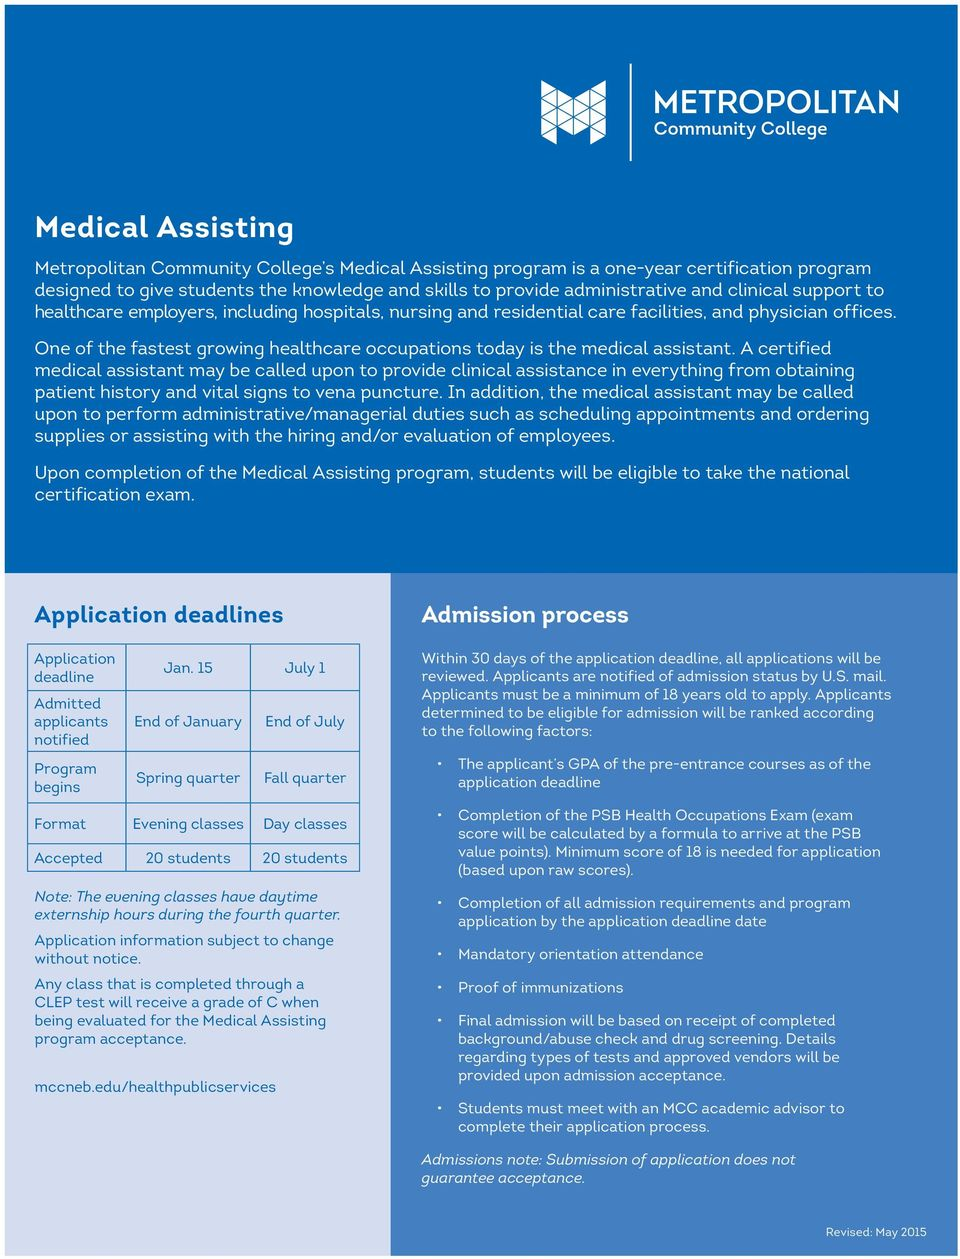 One of the fastest growing healthcare occupations today is the medical assistant.